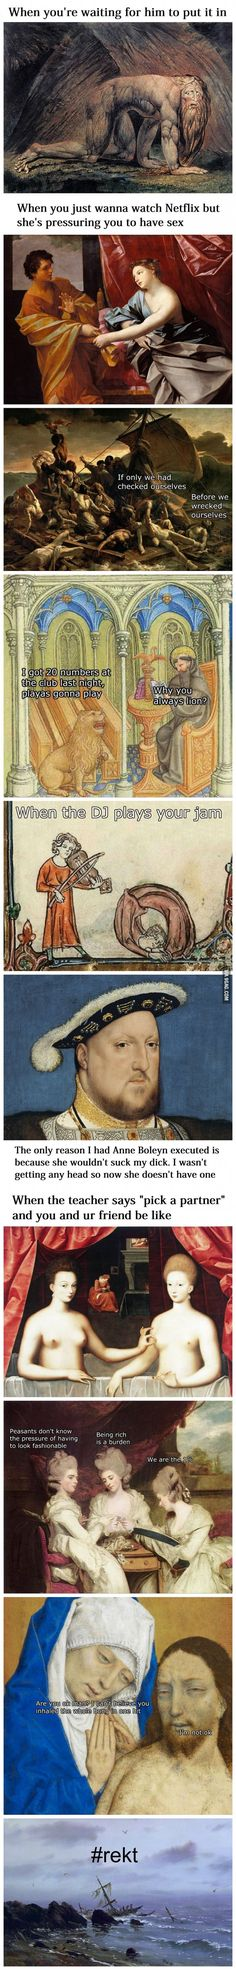 Classical Art Memes Latest (Part-2) Art, history and haha..